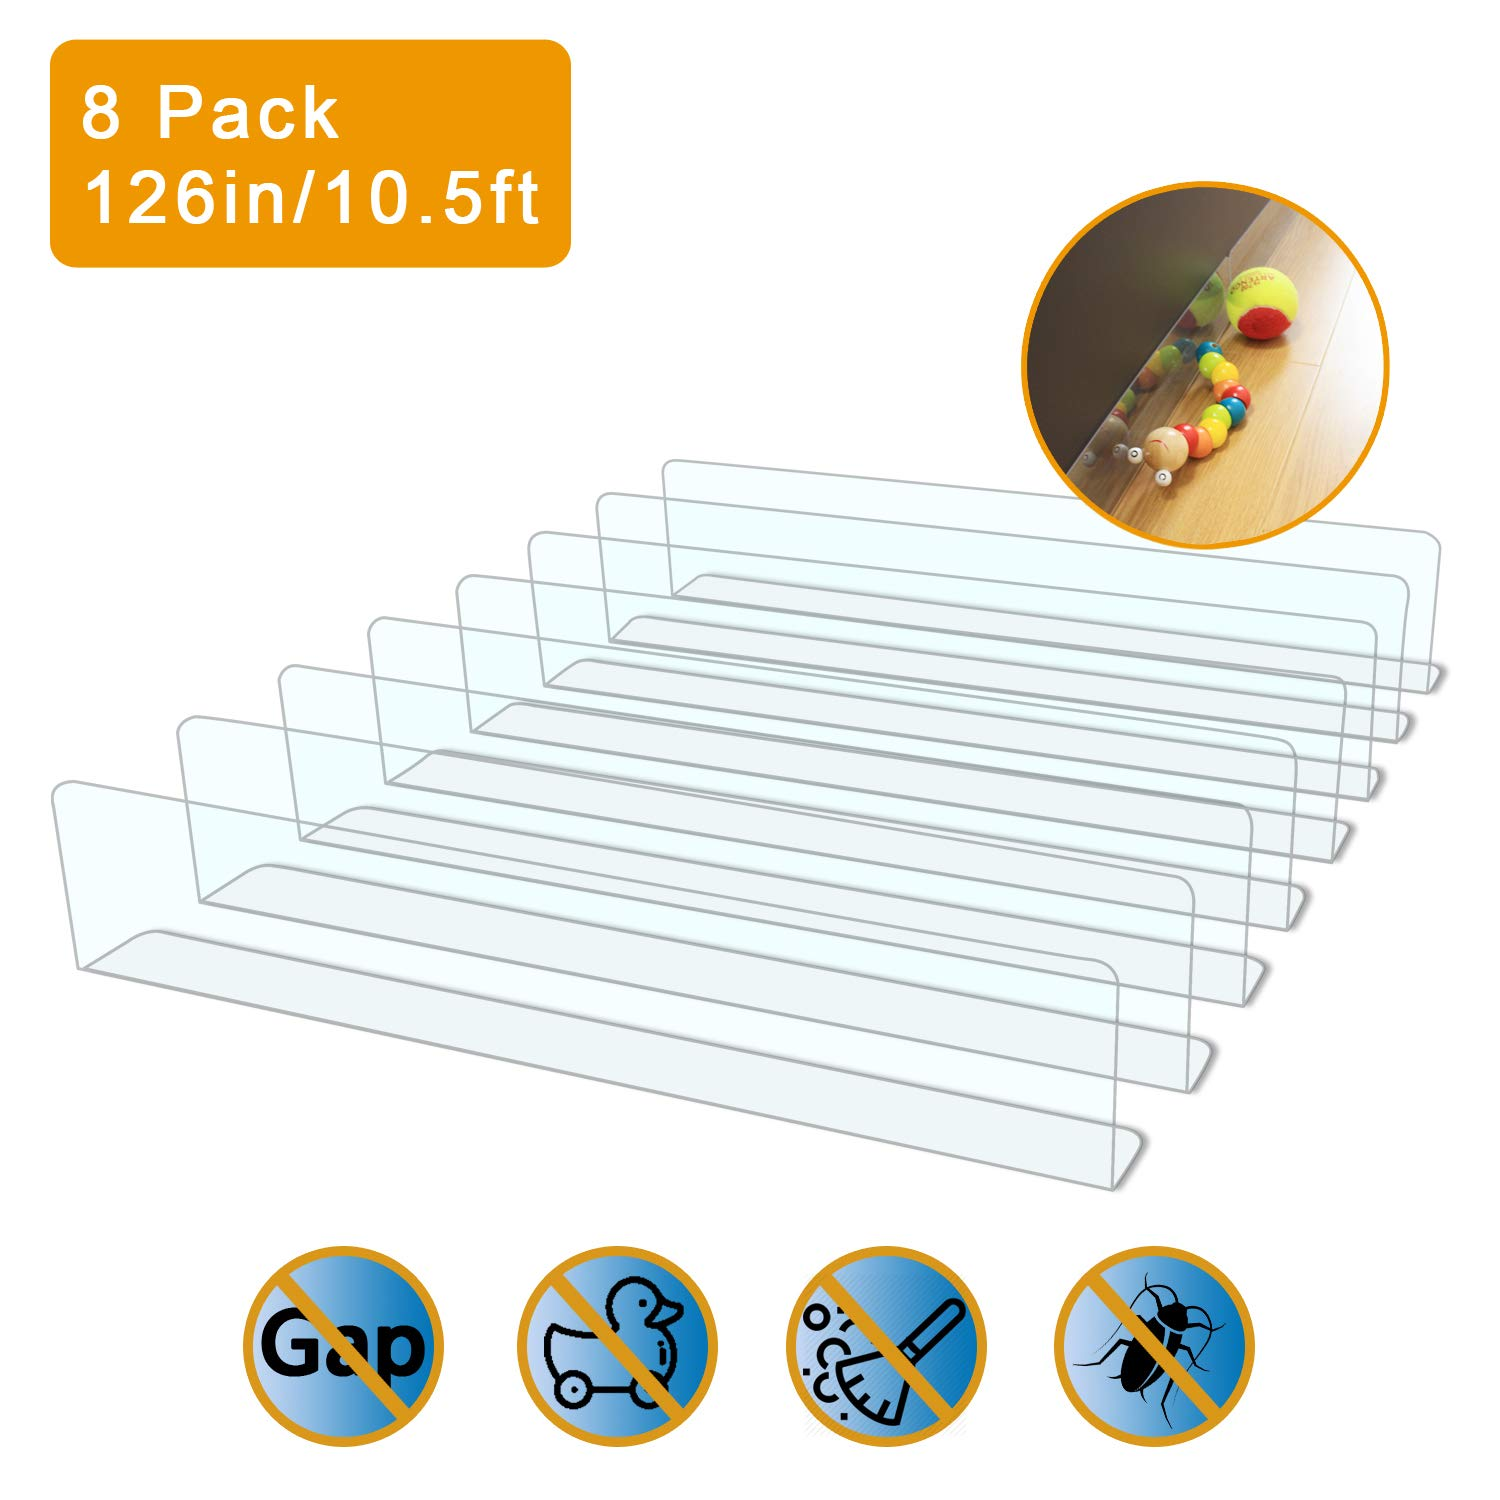 QIYIHOME 8-Pack Toy Blocker, Gap Bumper for Under Furniture, BPA Free Safe PVC with Strong Adhesive, Stop Things Going…